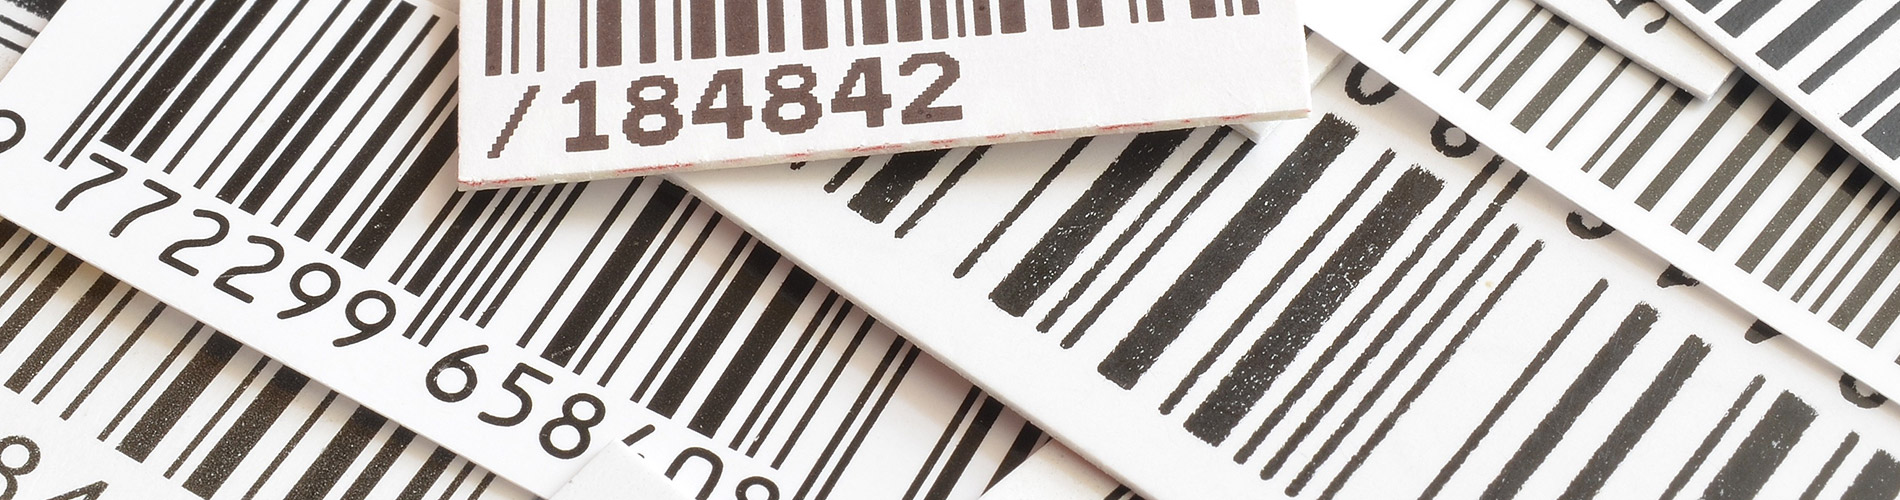 label-products-custom-labels-variable-imaging-and-barcoding-barcodes-numbers-diversified-labeling-solutions